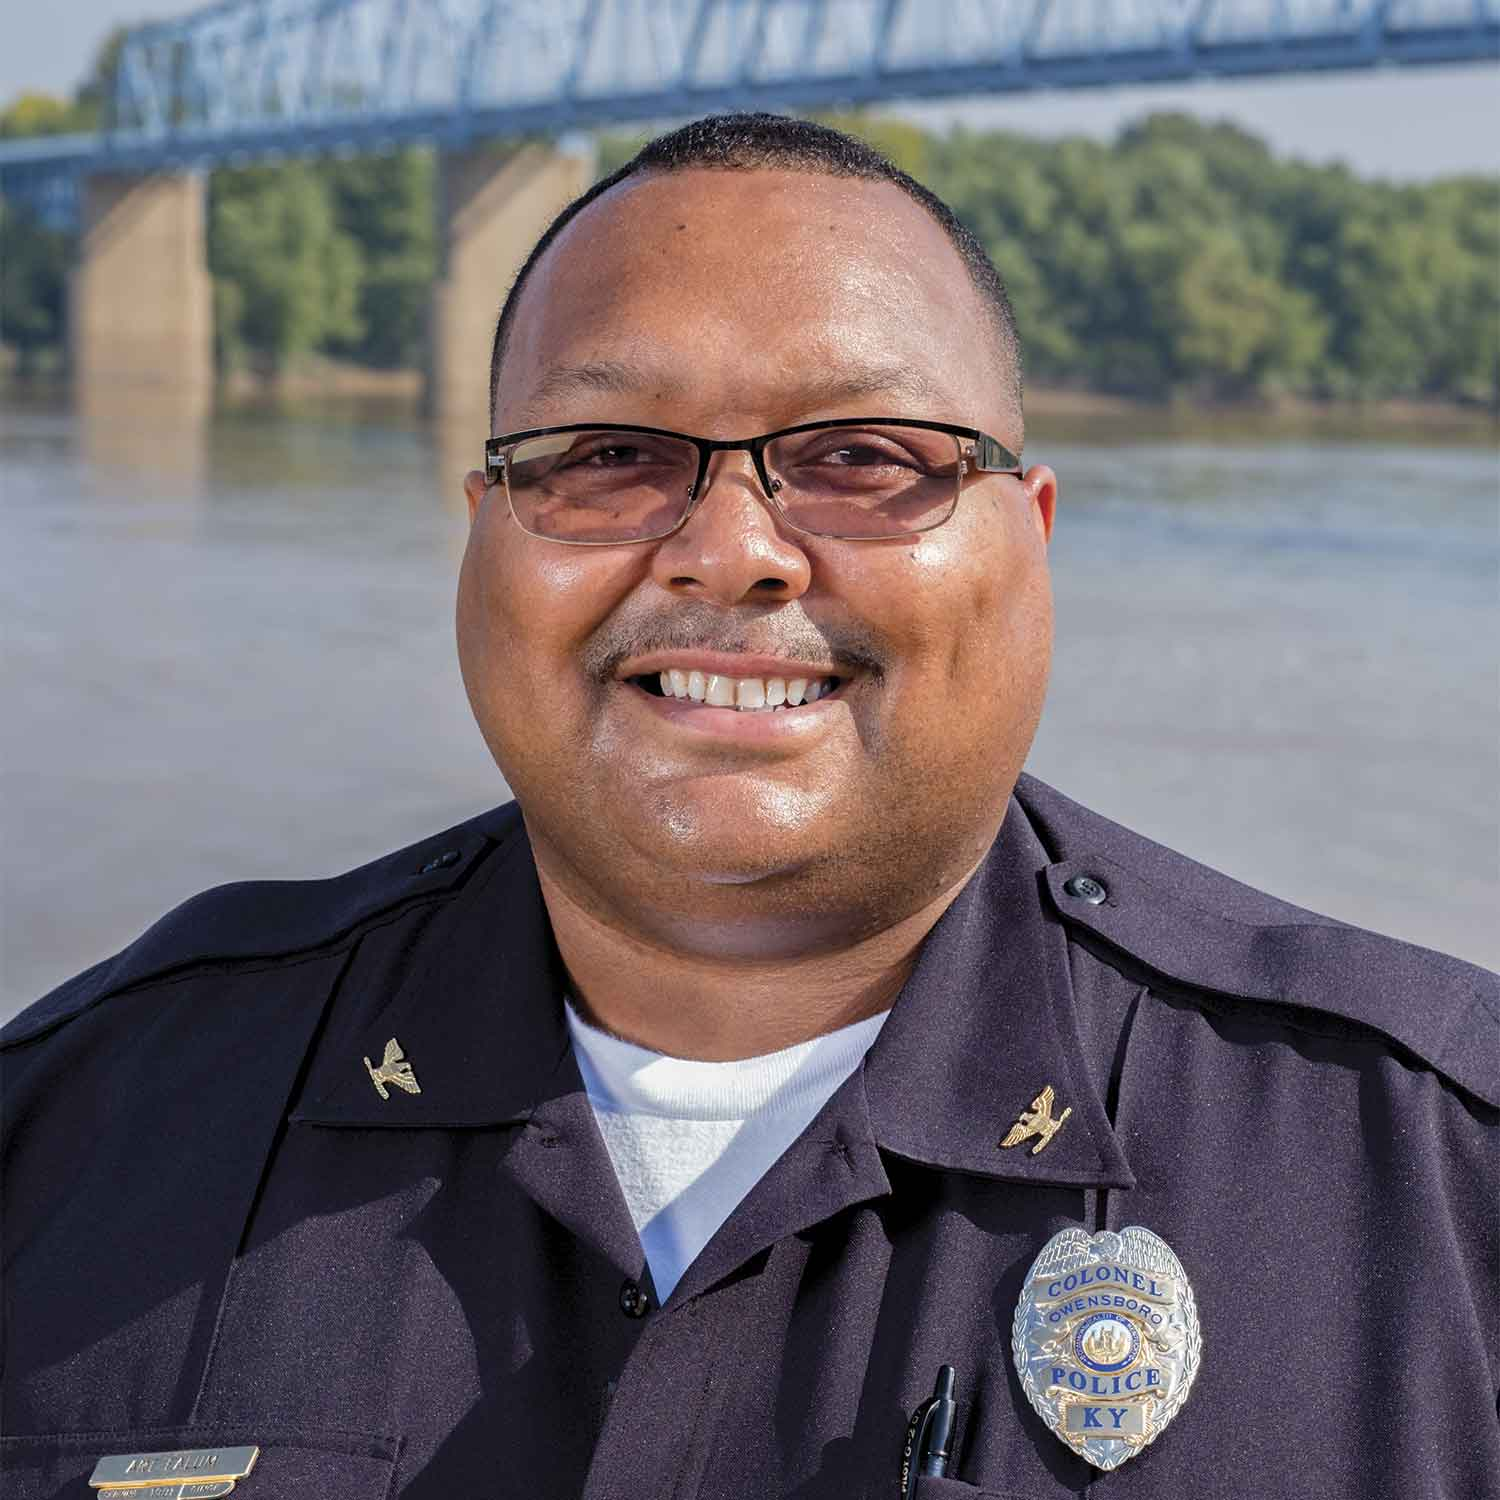 Art Ealum began his career with Owensboro as a police officer in 1991. He became chief in 2011. His rise to leadership was supported by great officers and leaders who believed in him and encouraged him often, he said. (Photo by Jim Robertson)